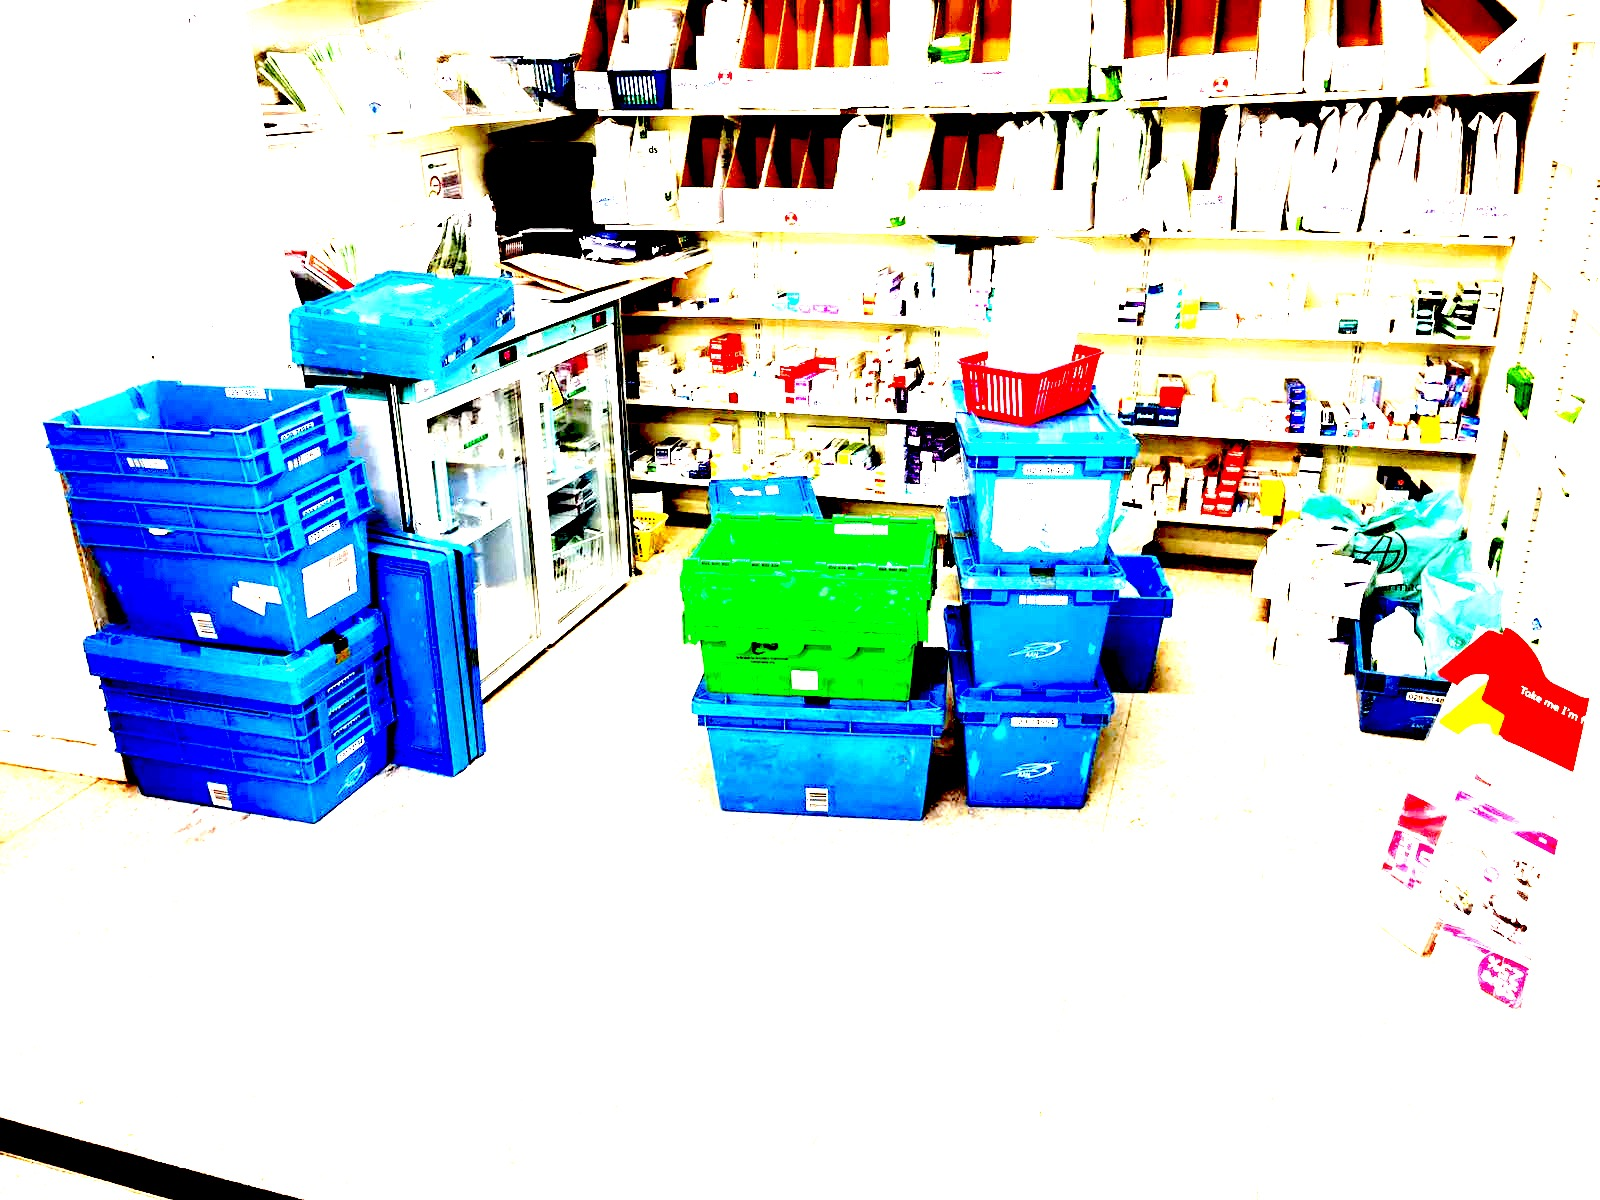 untidy community pharmacy with stock delivery on the floor